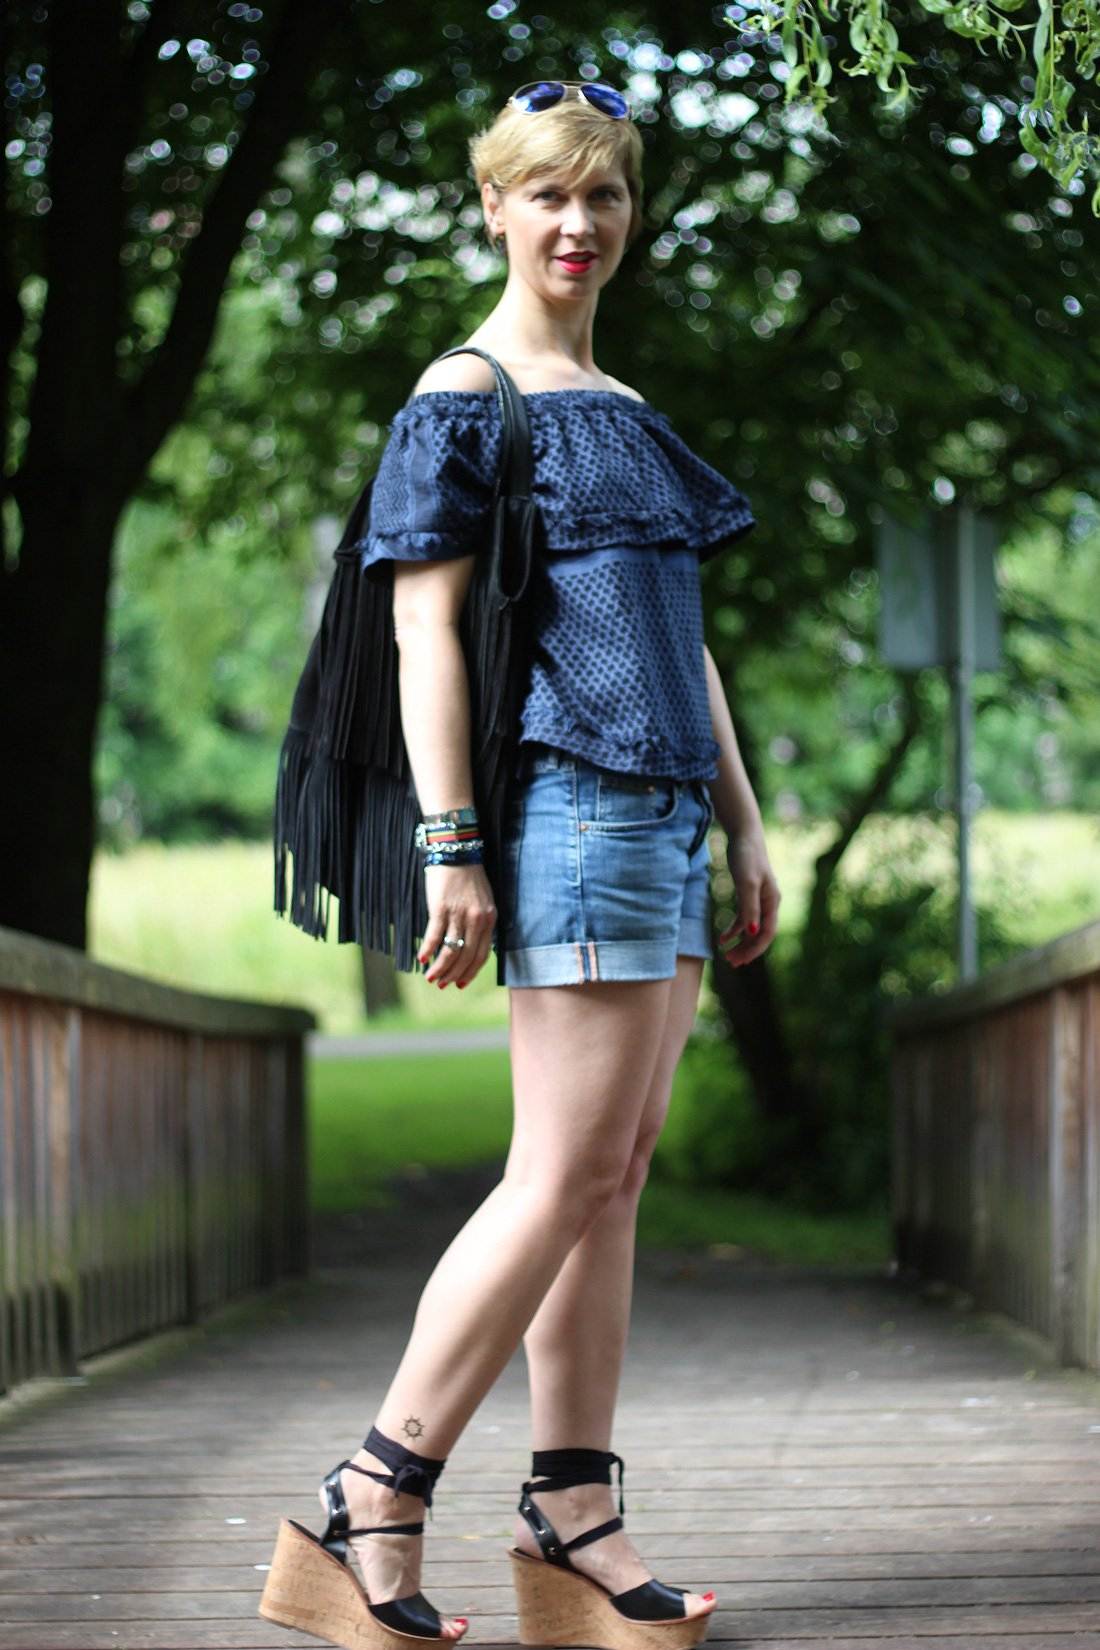 Klebetattoo, Shorts, Cecilie Copenhagen, Jeans, schulterfrei, offshoulder, Summer, Sommerlook, Wedges, Bindewedges